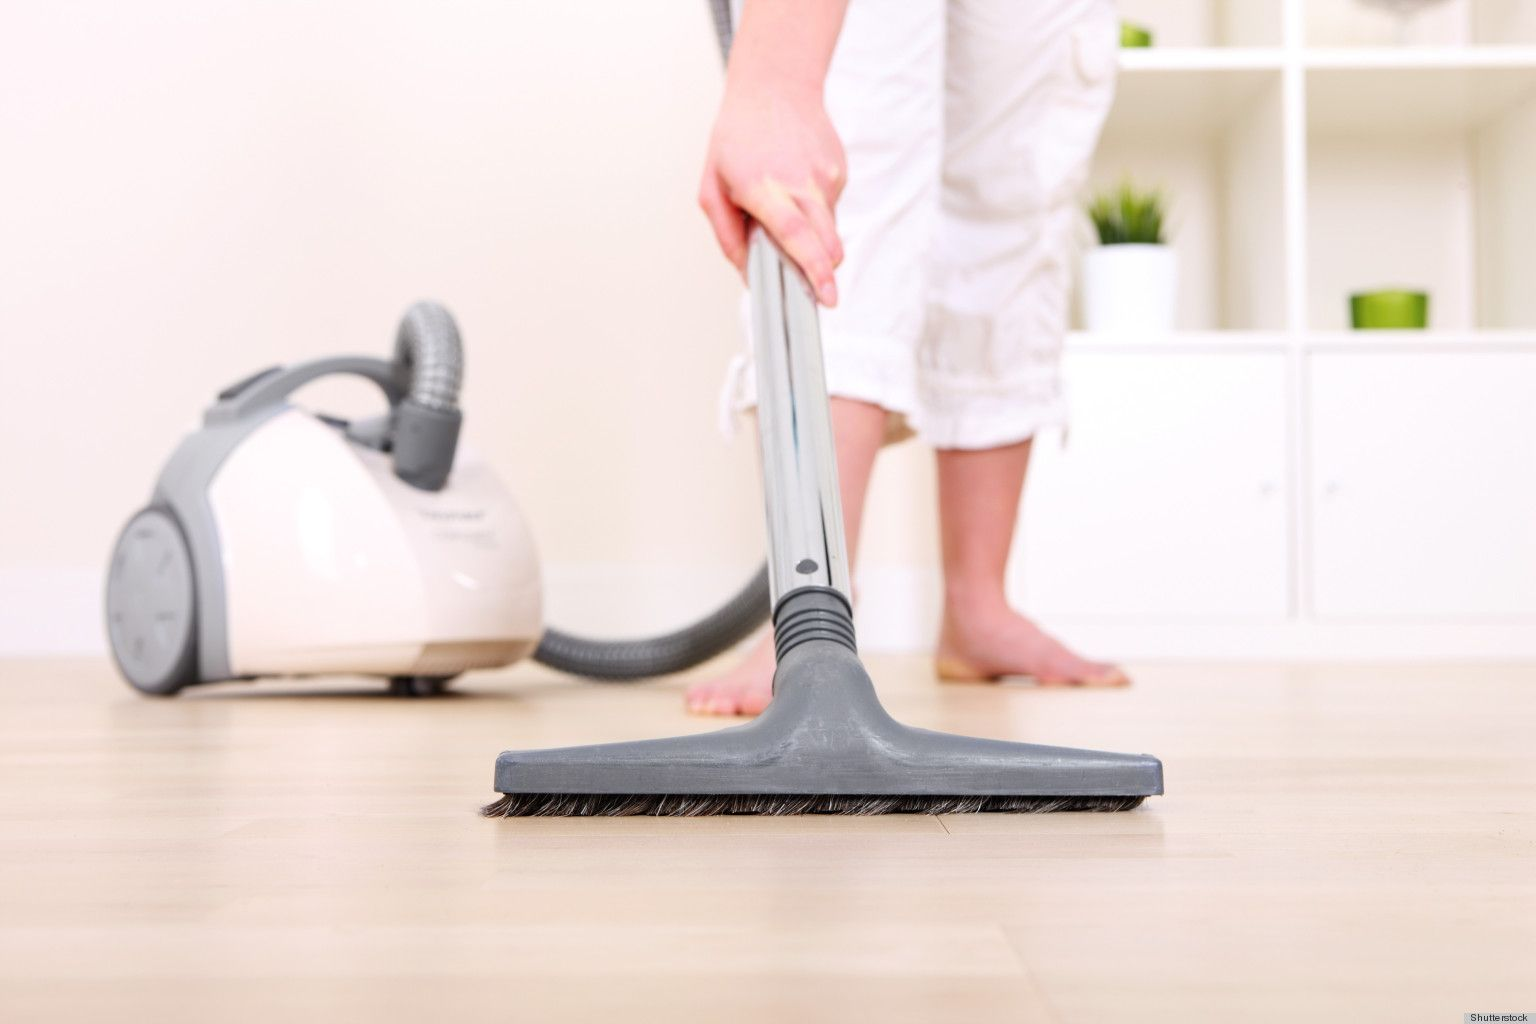 The best vacuum cleaner for hardwood floors - 17 Best Images About Best Vacuum Cleaner For Hardwood Floors On Pinterest Samsung Cordless Vacuum And Pets